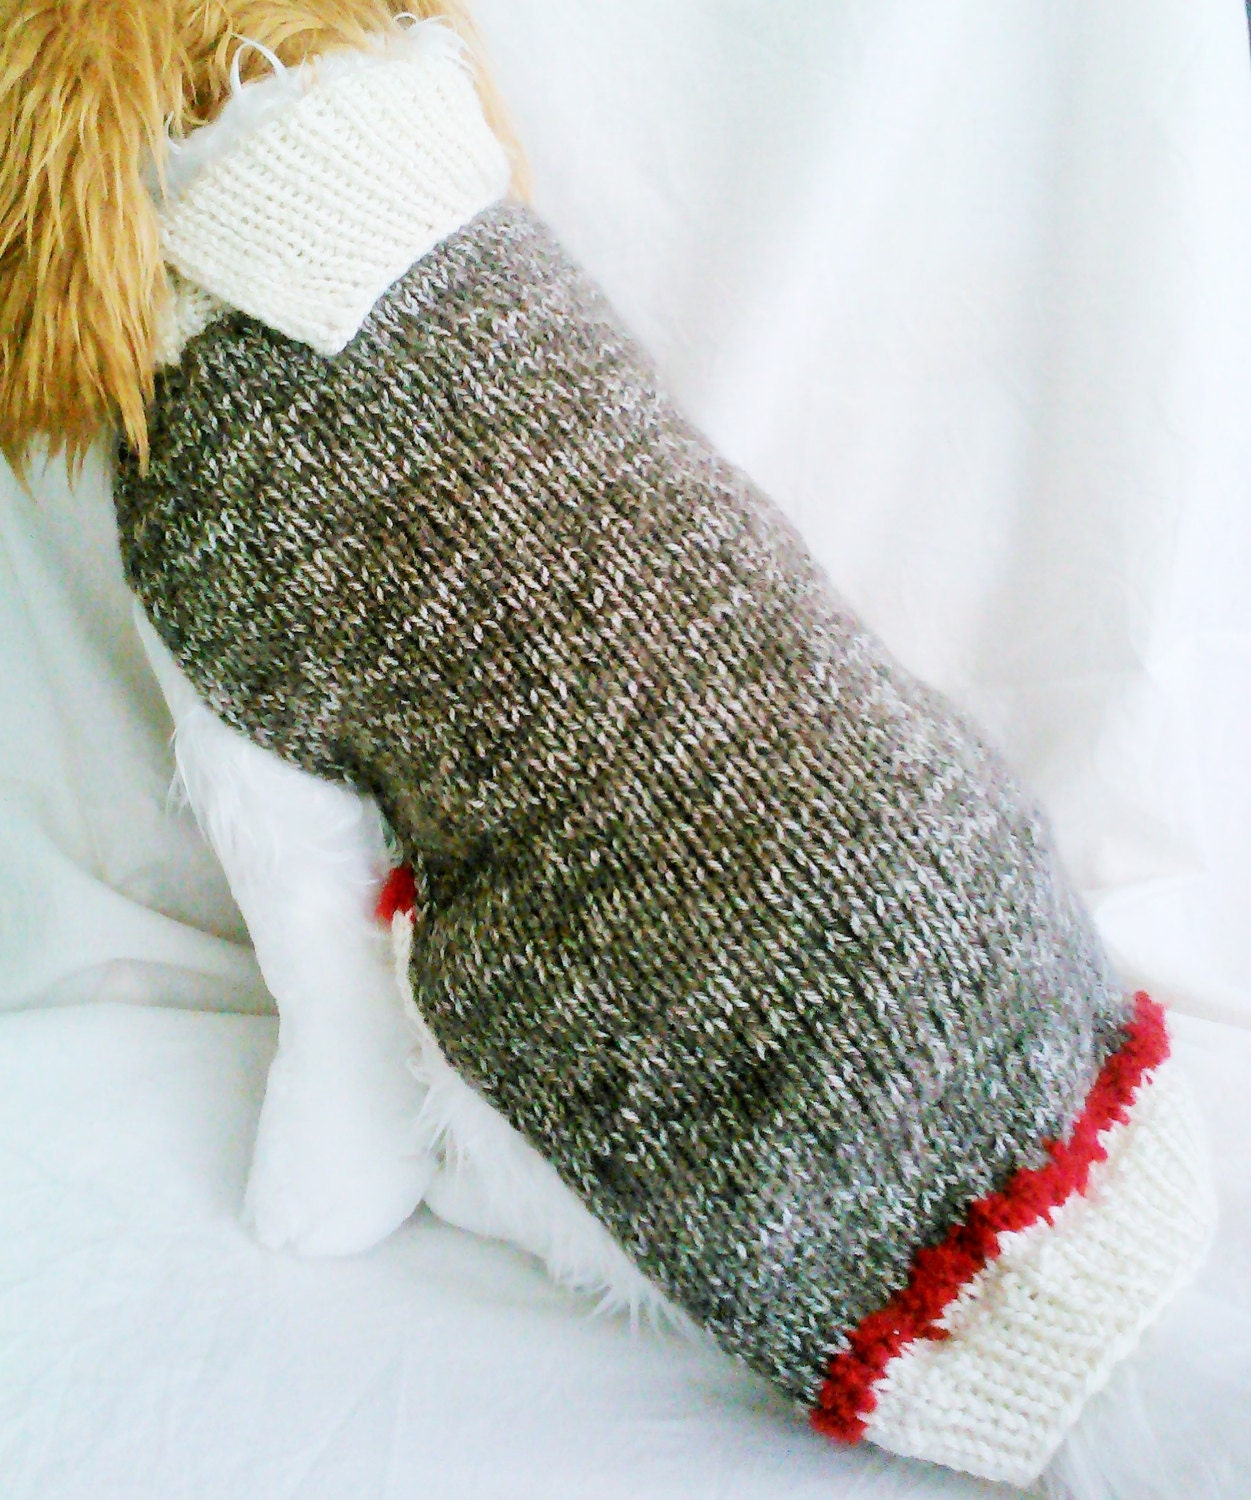 Knitting Patterns For Sock Monkey Clothes : Sock Monkey Dog Sweater / Handknit / Dog Clothing /3 Sizes